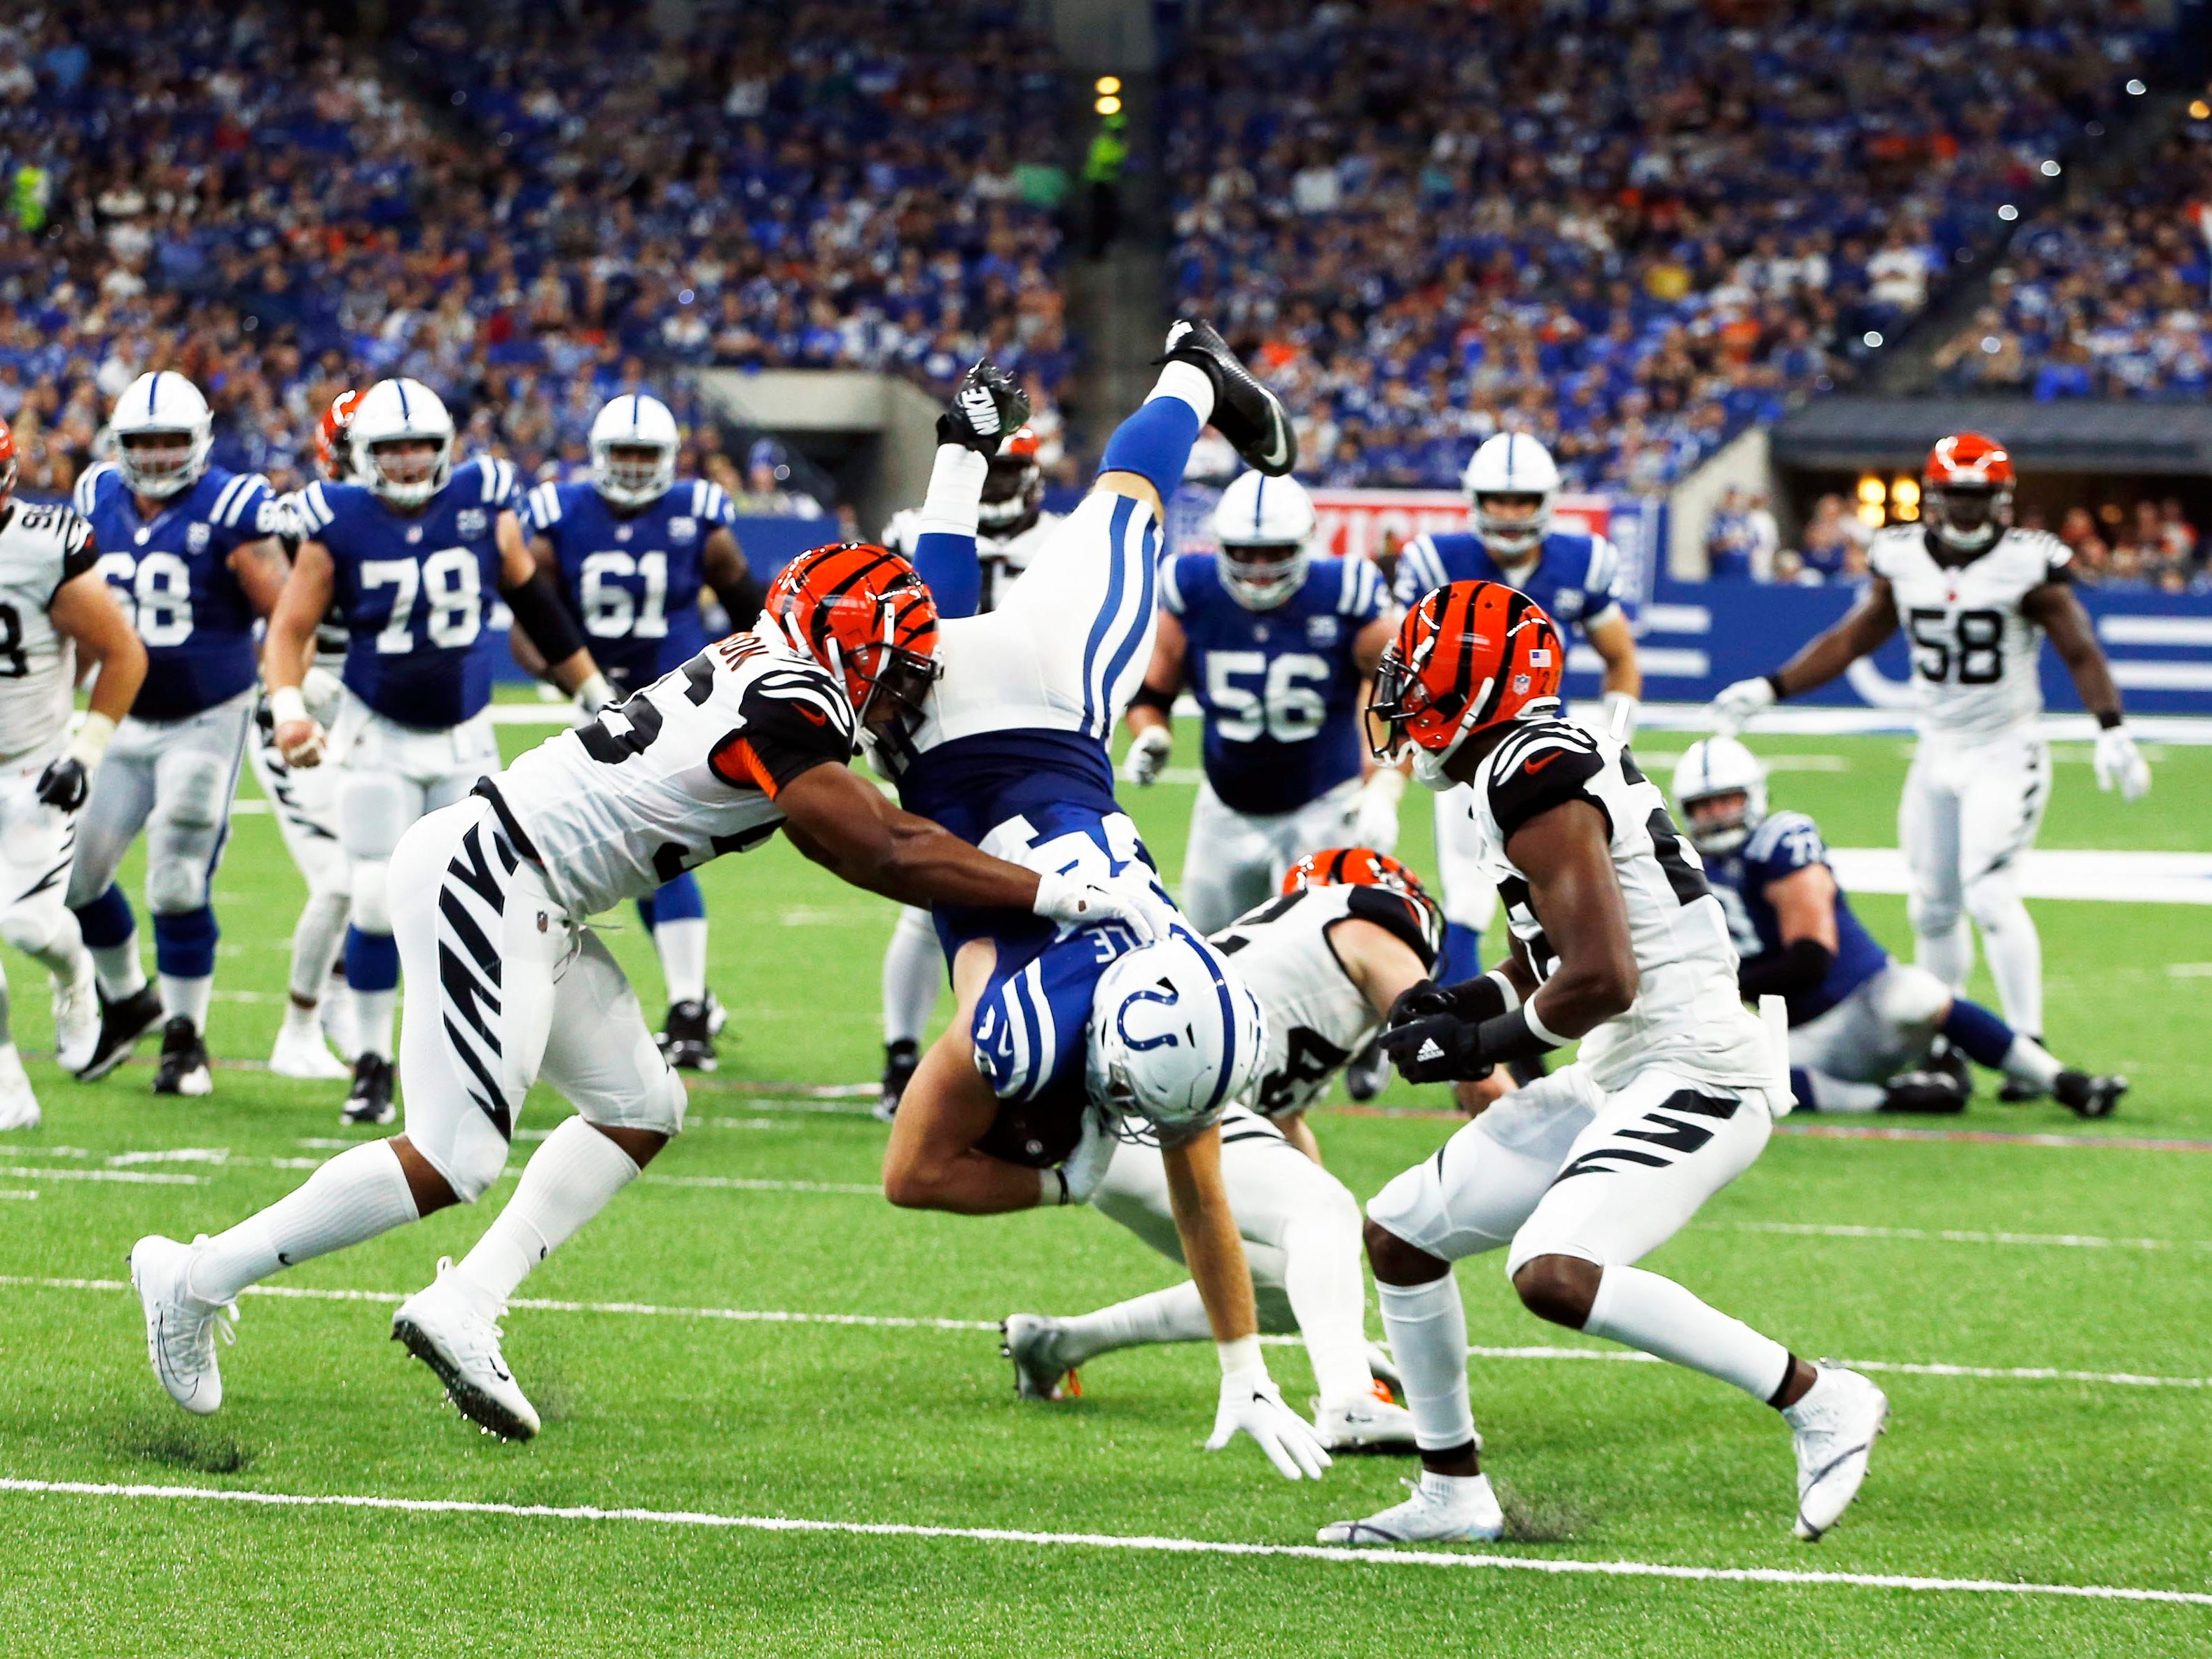 Sep 9, 2018; Indianapolis, IN, USA; Indianapolis Colts tight end Jack Doyle (84) gets upended by Cincinnati Bengals safety Clayton Fejedelem (42) during the 3rd quarter at Lucas Oil Stadium. Mandatory Credit: Brian Spurlock-USA TODAY Sports